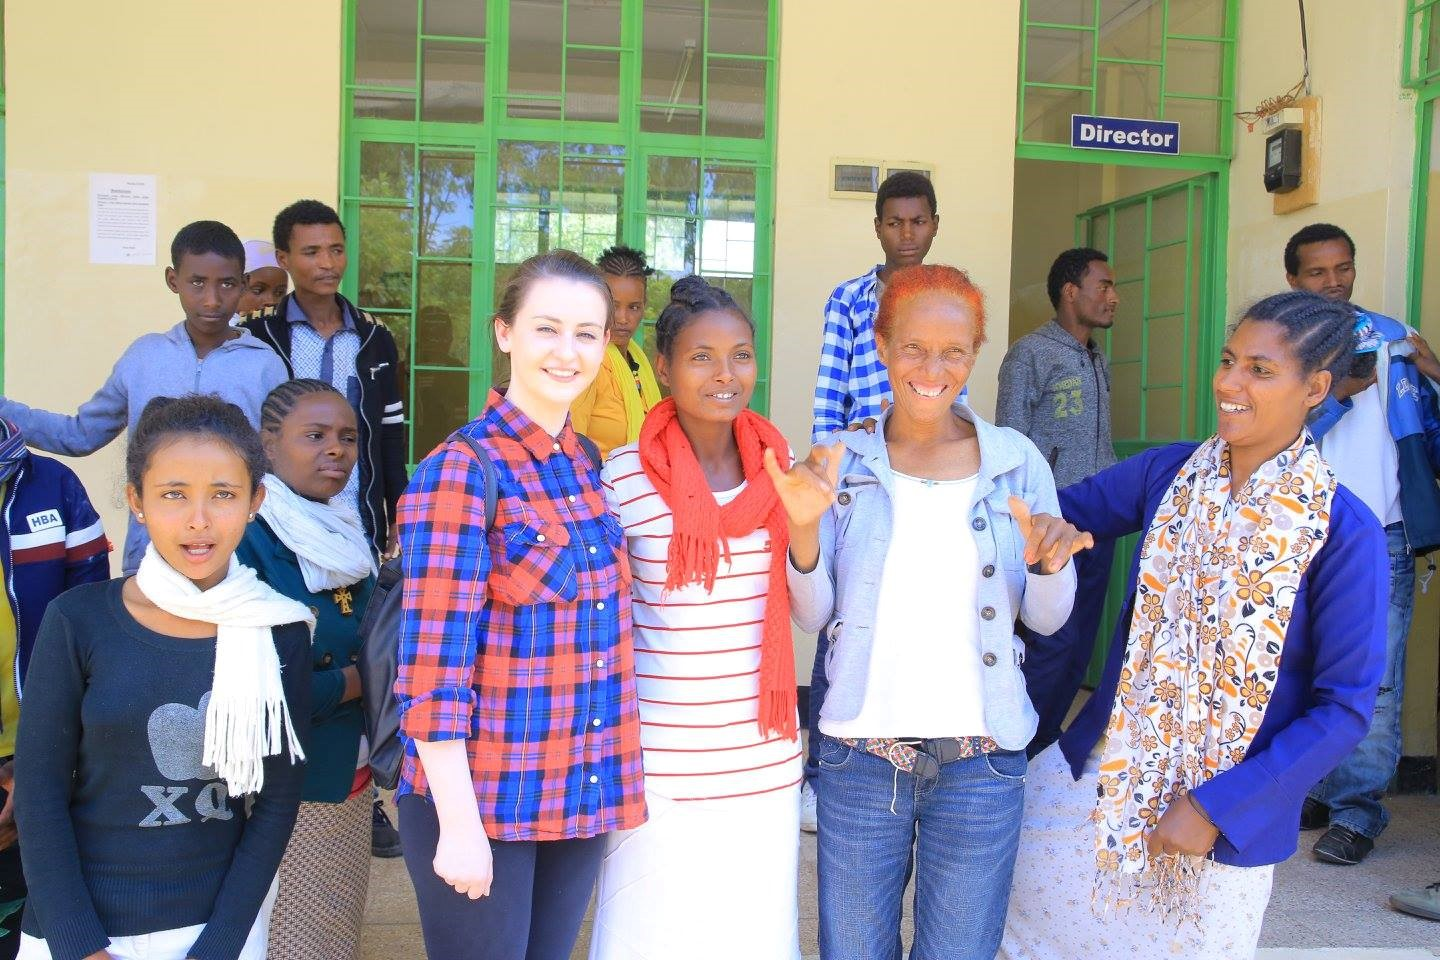 From Dublin to Ethiopia – where education is the jewel in